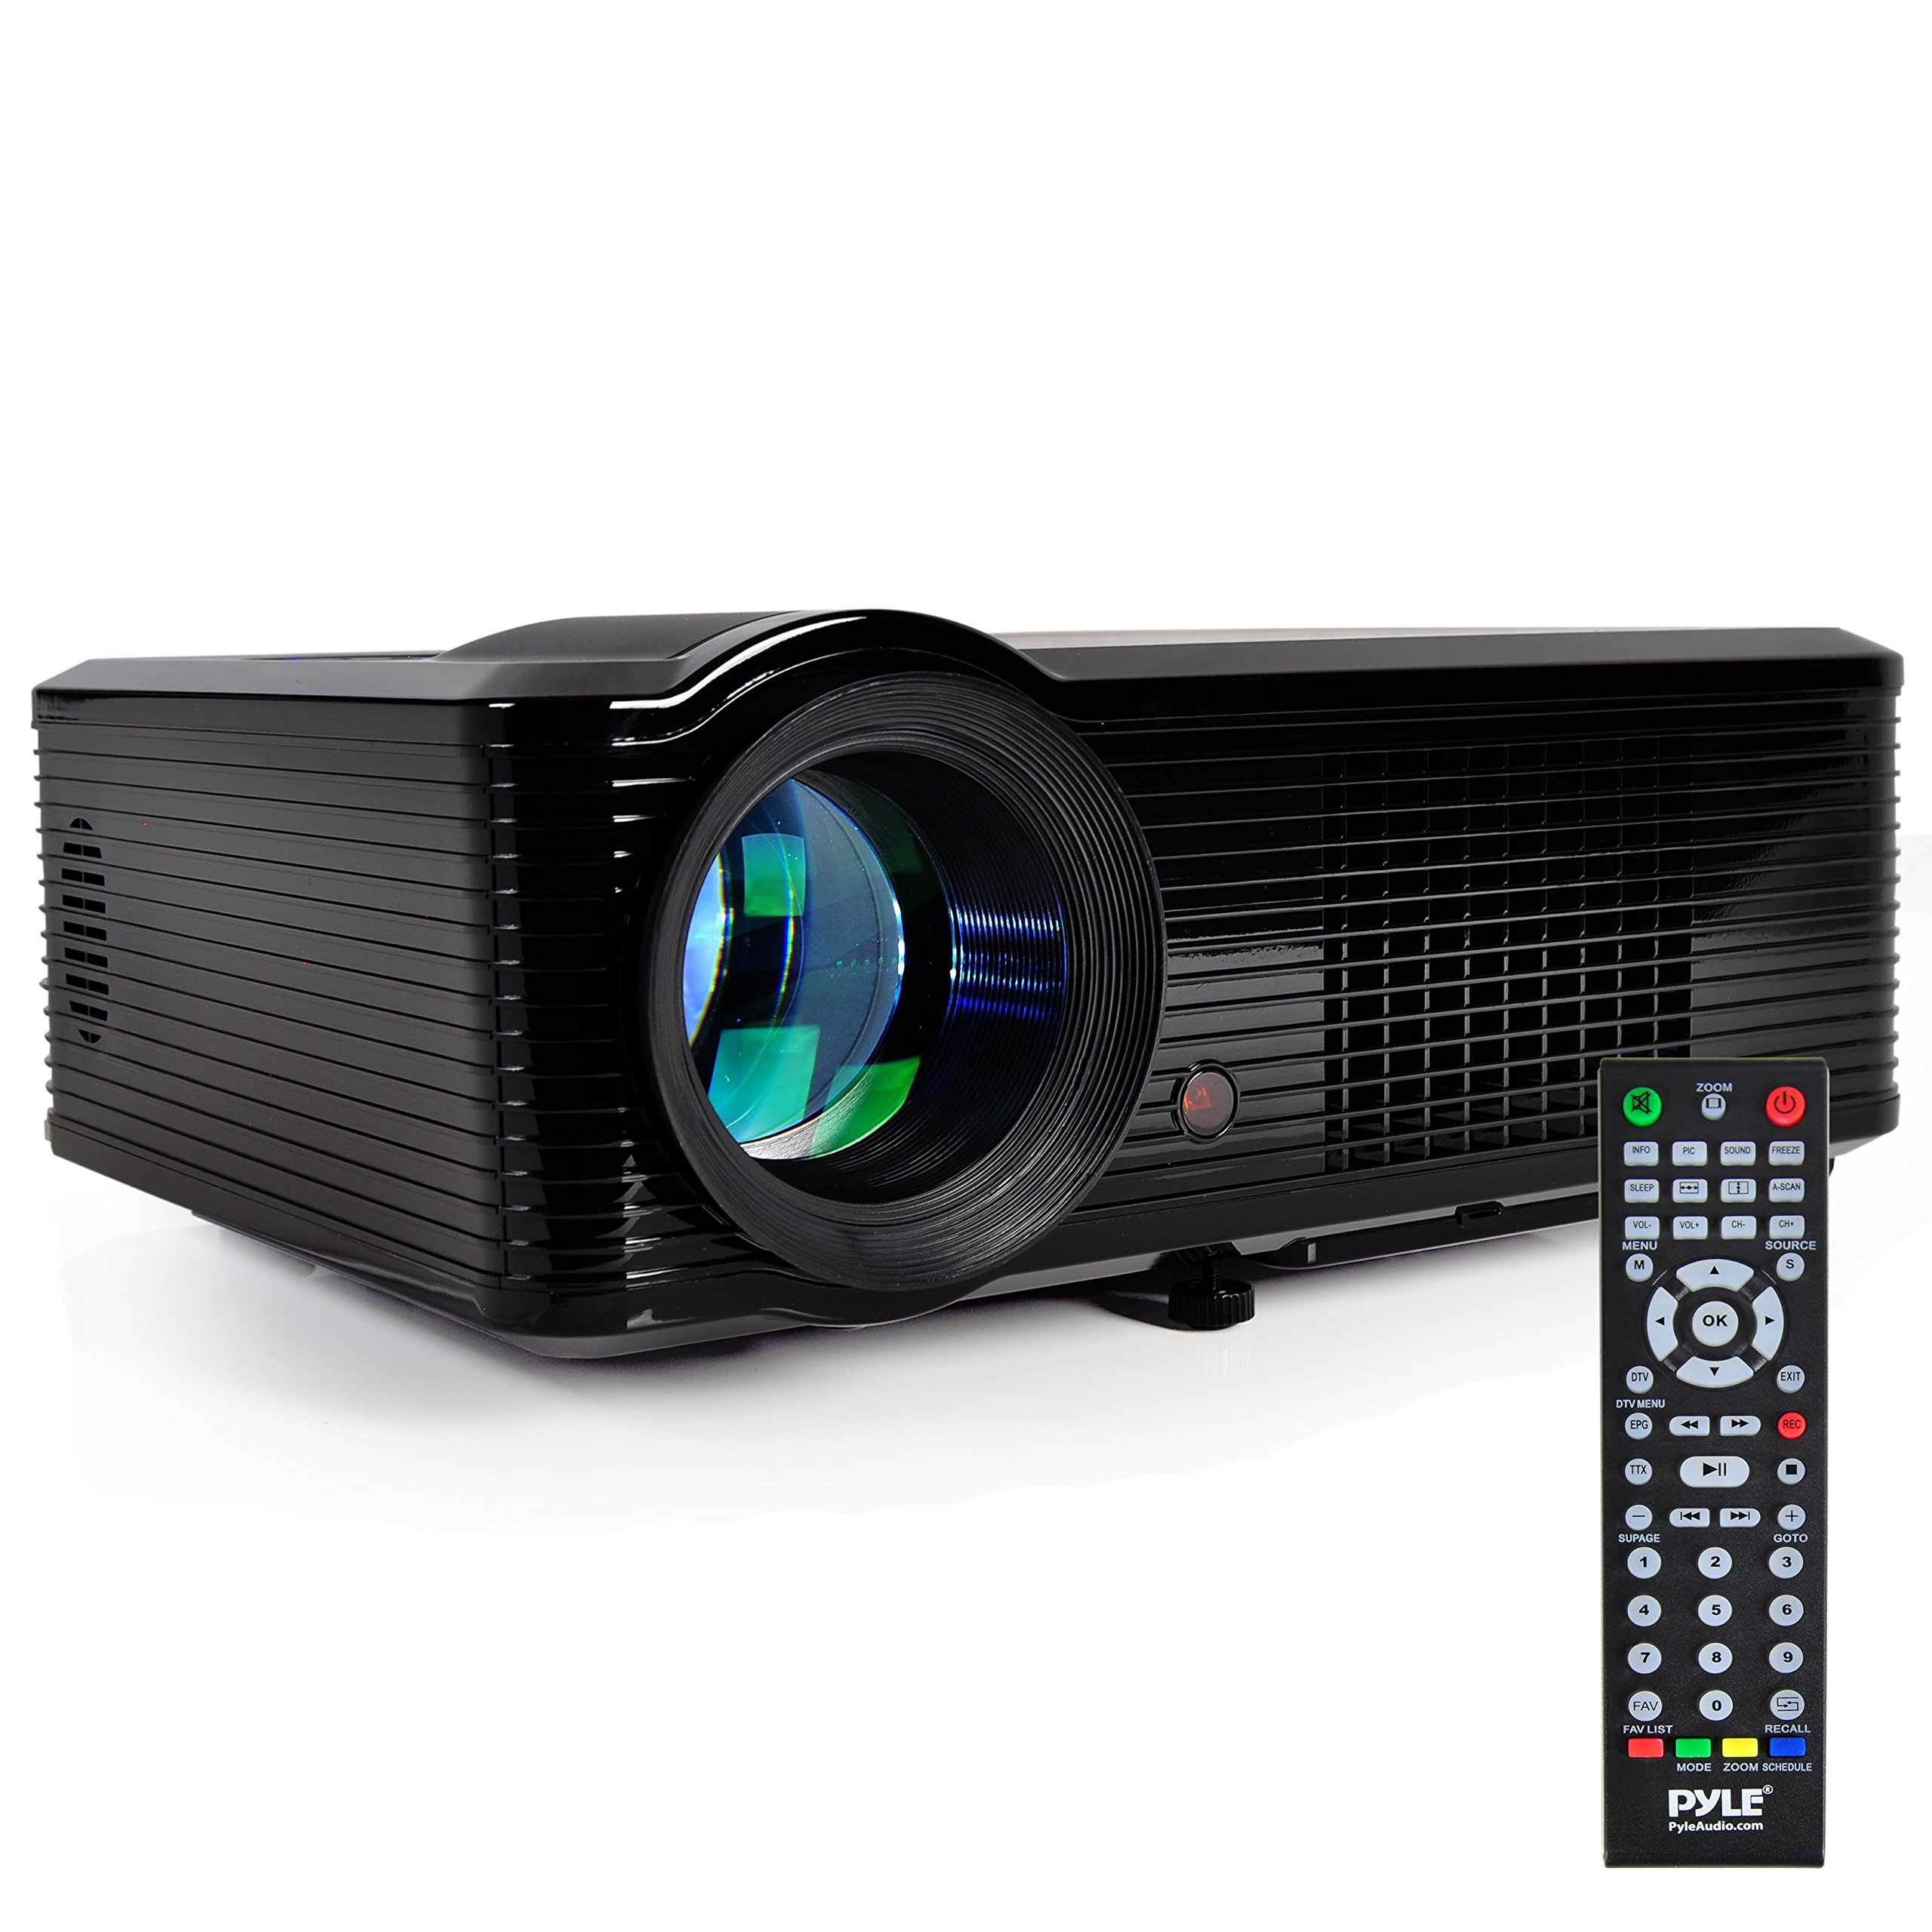 Pyle LCD LED Video Projector, Home Theater Projector with Builtin Stereo Speakers, 2 HDMI Ports, PiP, 800x600 Native Resolution, Adjustable Optical Keystone for TV PC Computer, Laptop